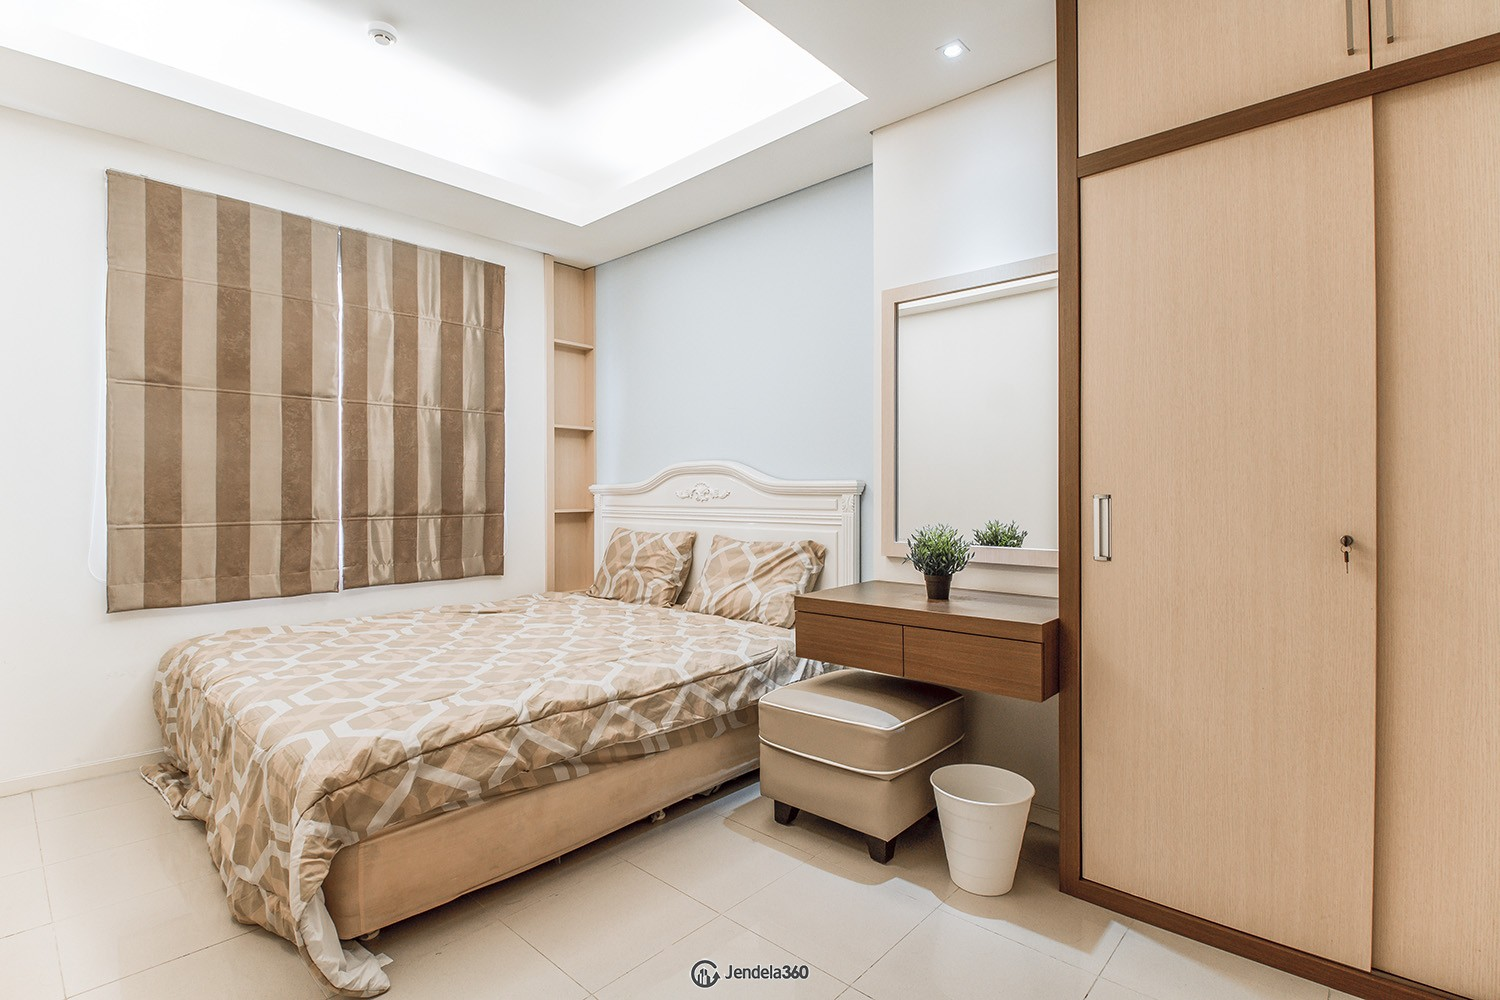 Bedroom 1 Cosmo Terrace - Thamrin City